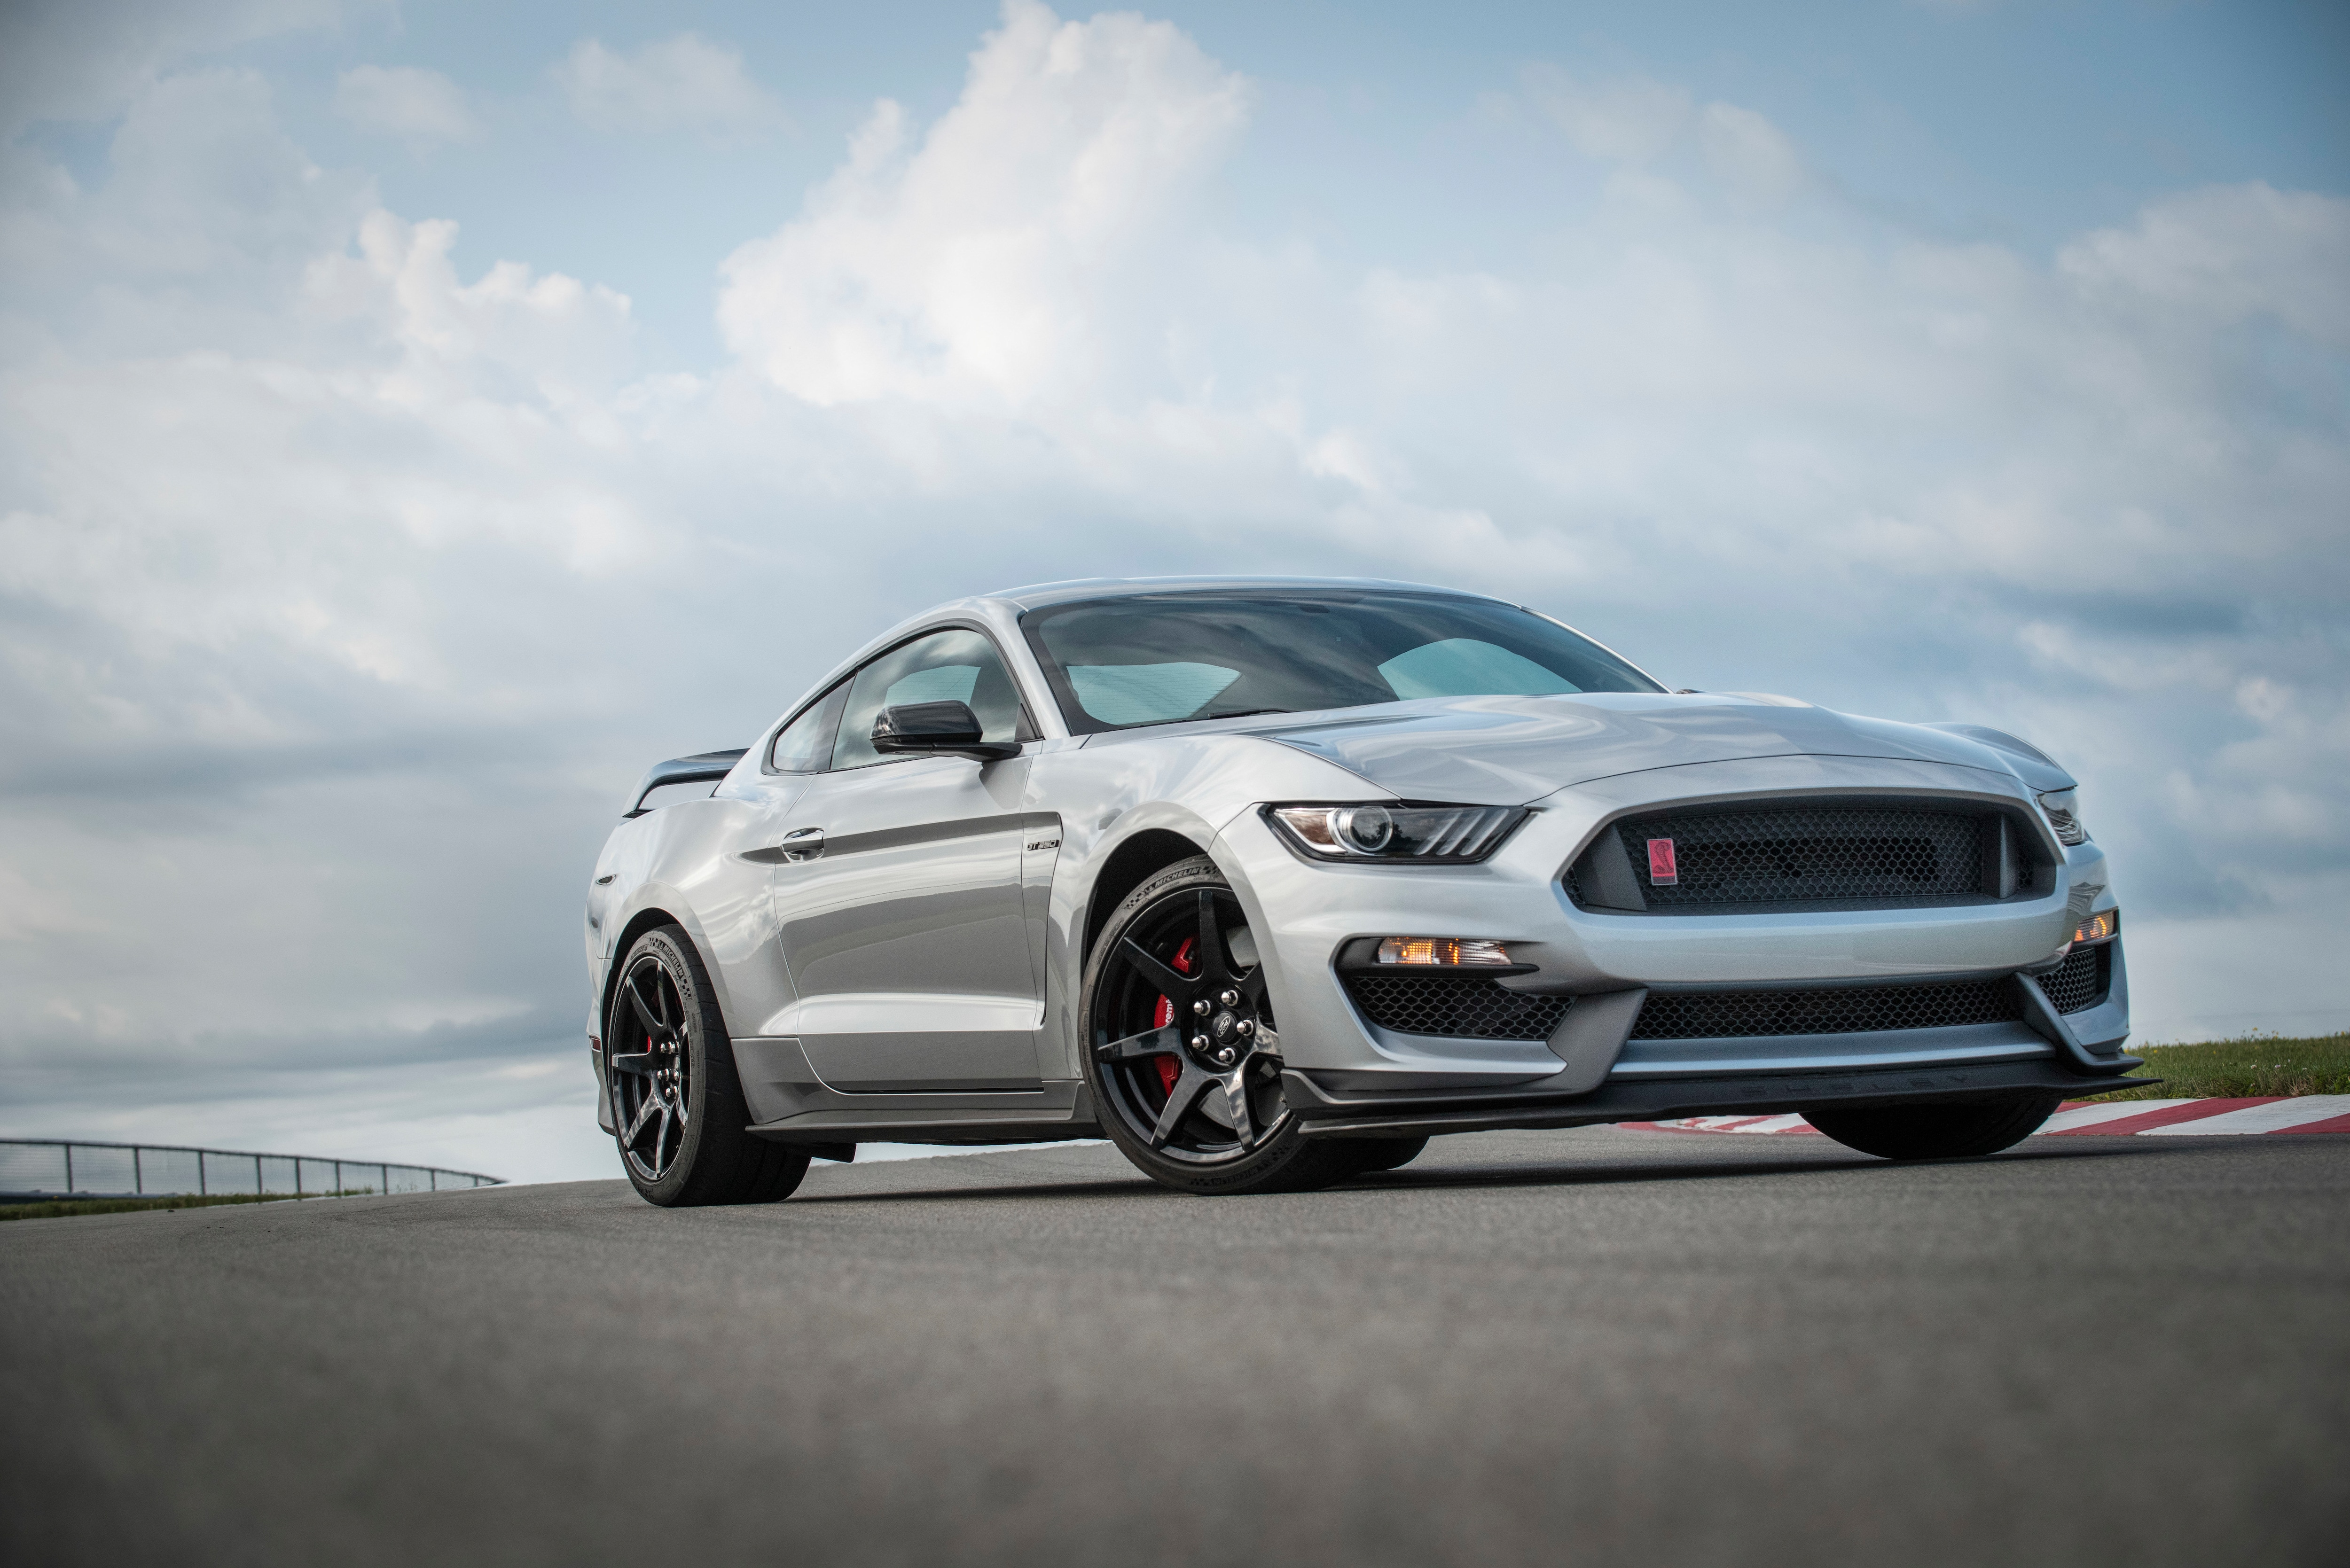 Ford sold 102,090 units of Mustang globally in 2019. During this period, Mustang sales in Germany increased 33%, in Poland sales rose by nearly 50%, and in France, they nearly doubled. (2019 Ford Mustang)